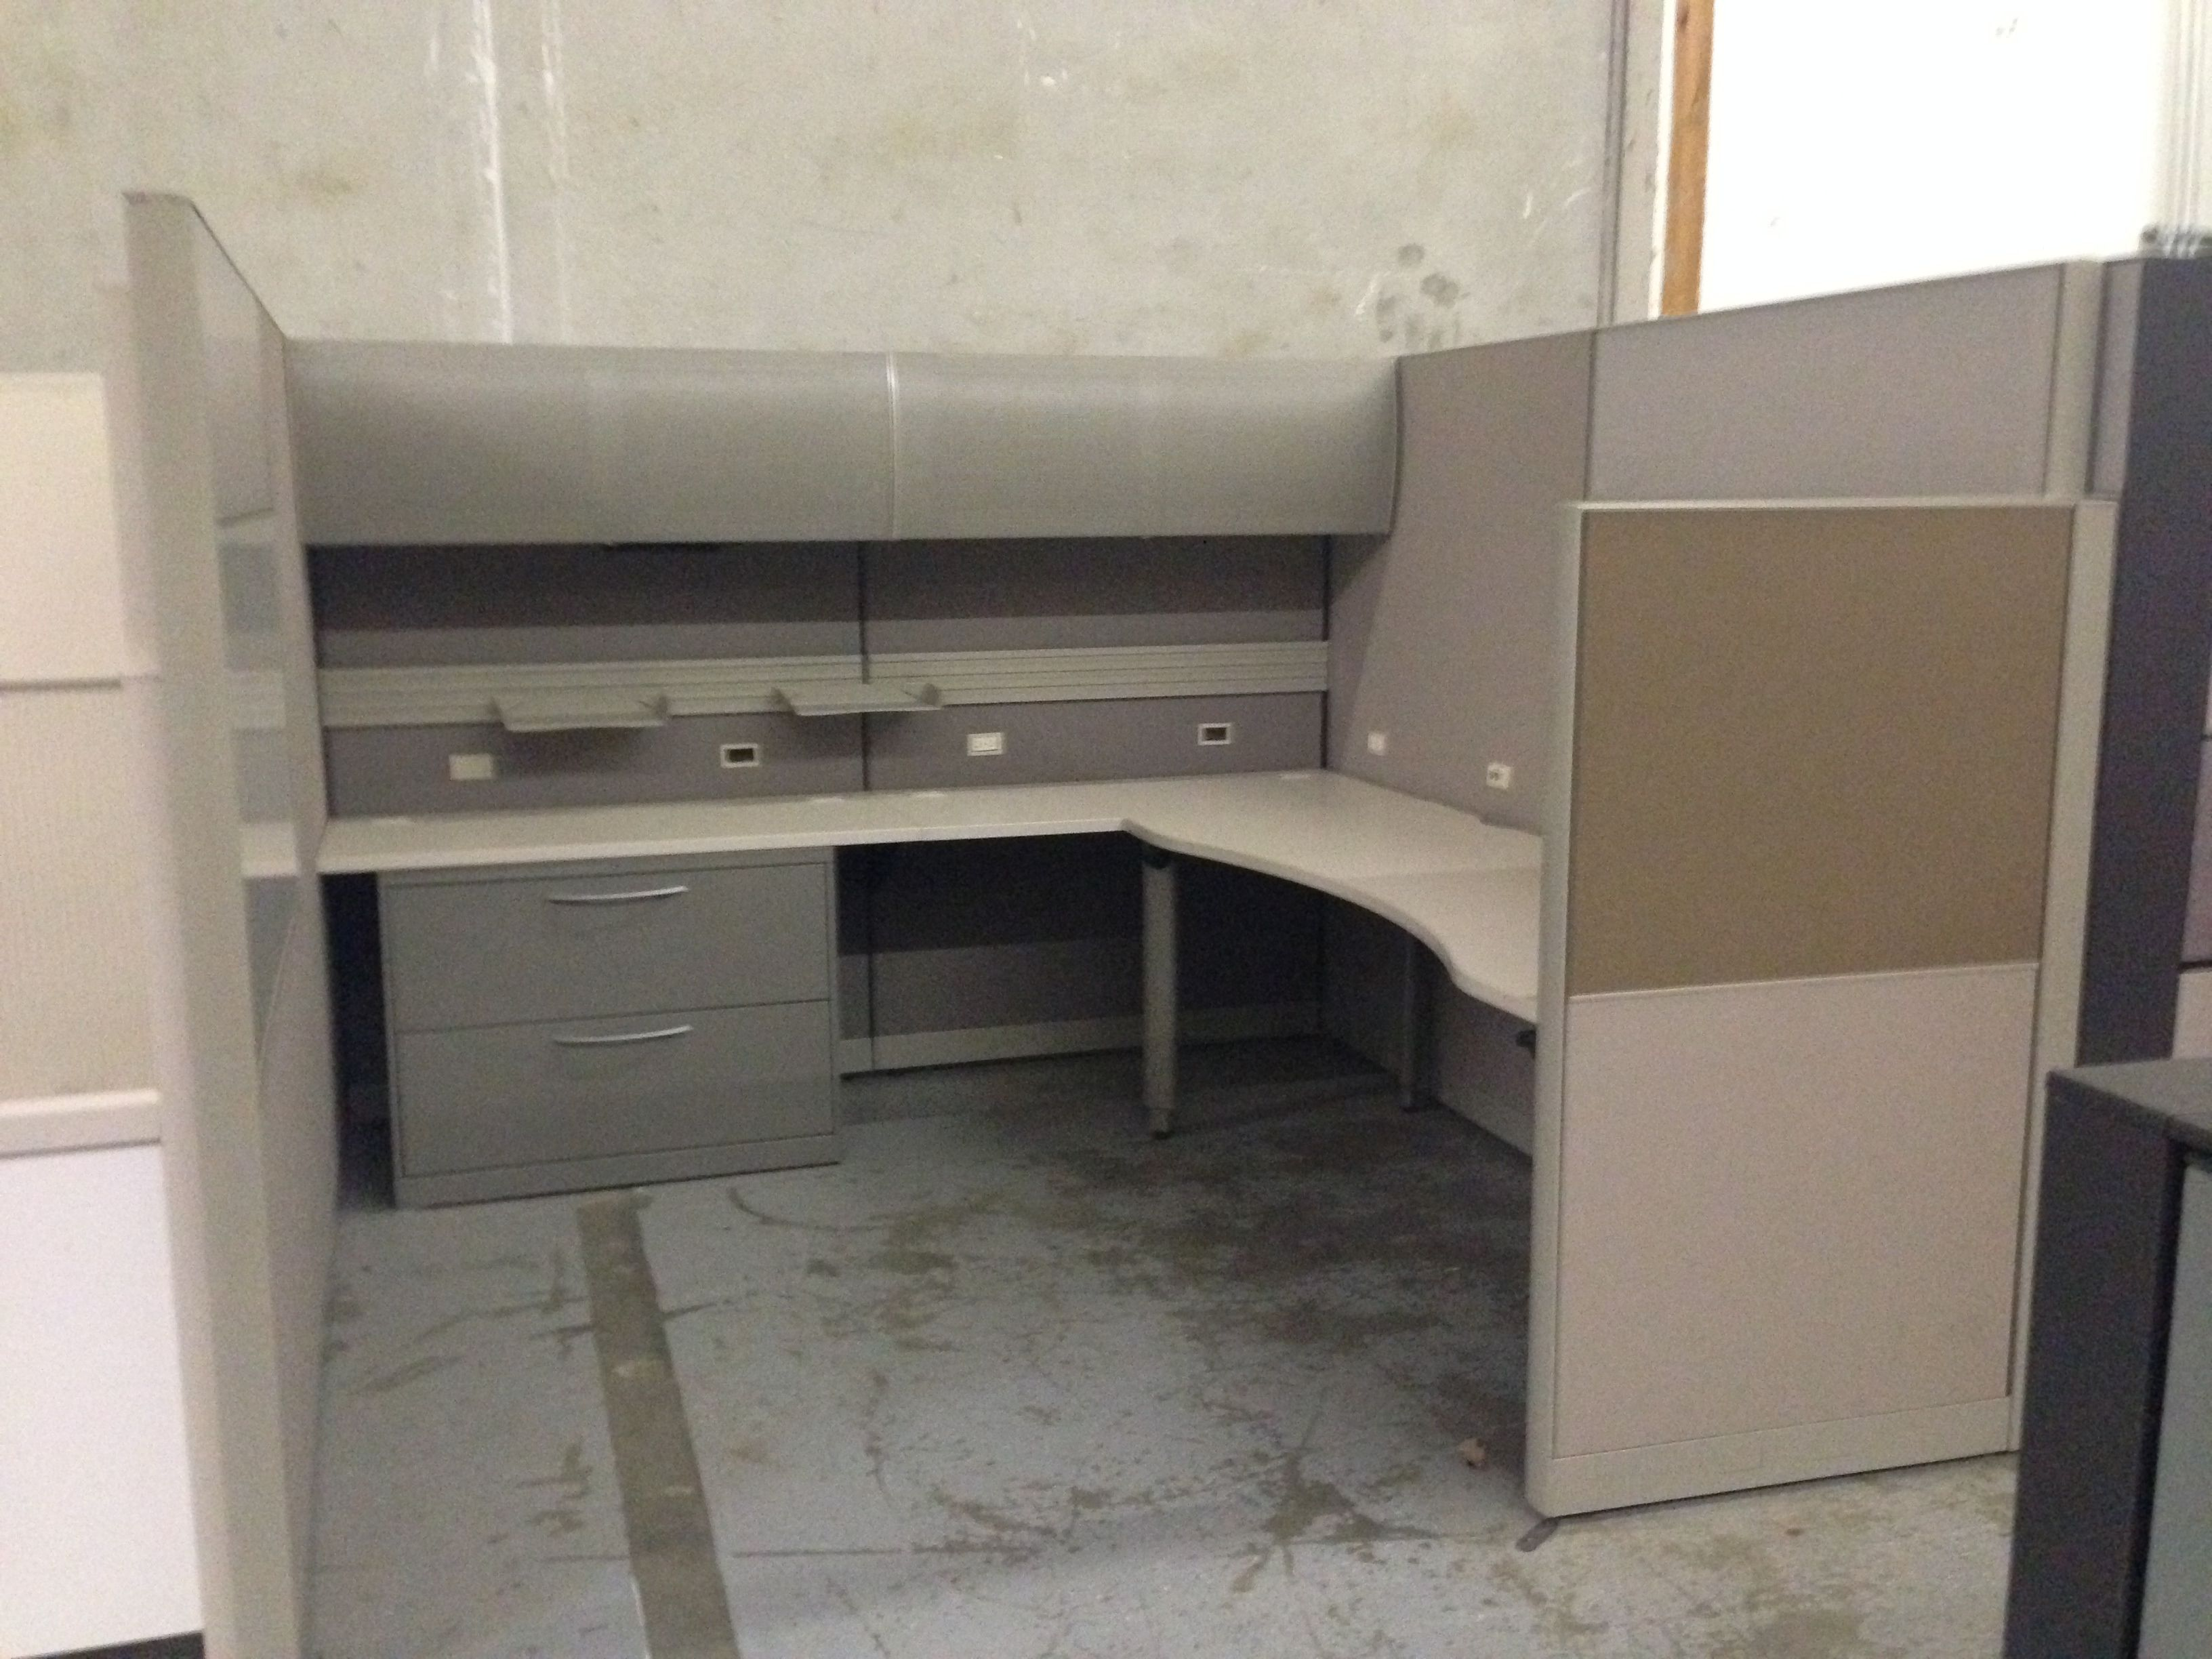 Allsteel cubicle home decor furniture